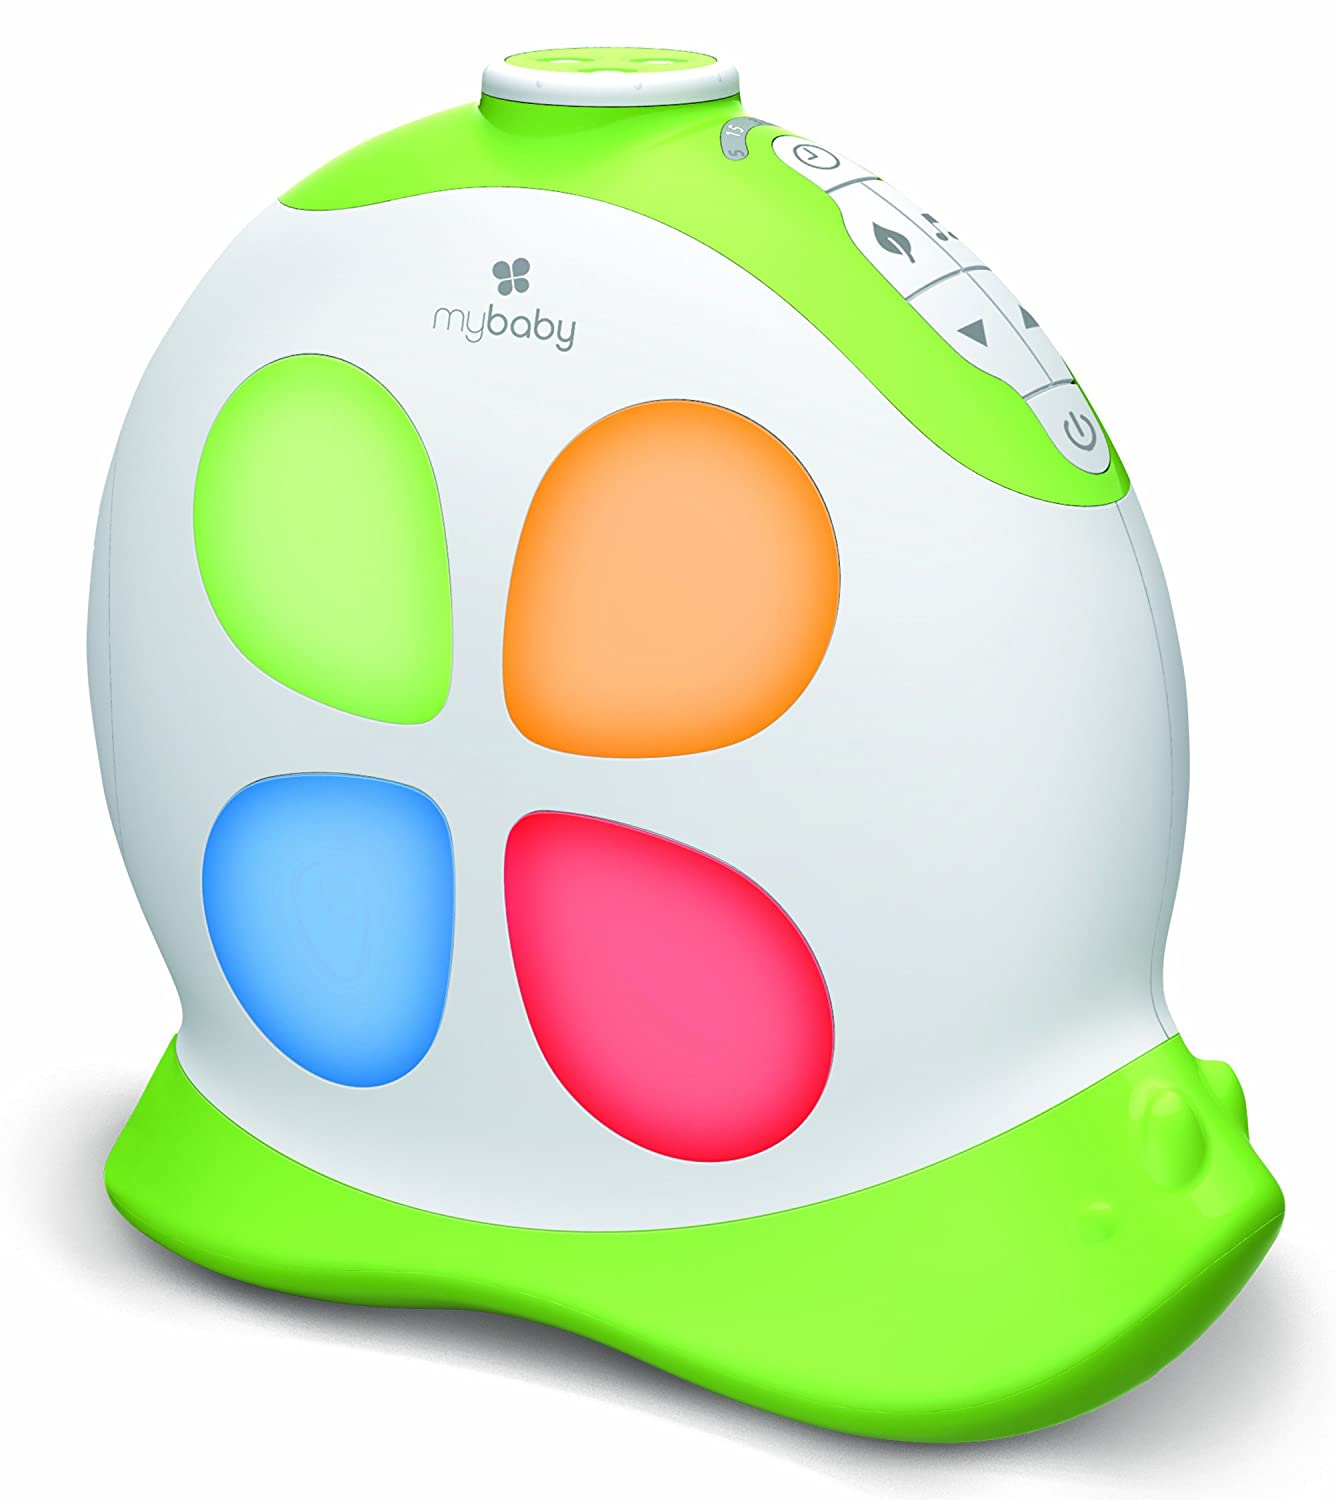 myBaby SoundSpa Sleepy Snail Projection Light and Noise Machine by myBaby: Amazon.es: Bebé